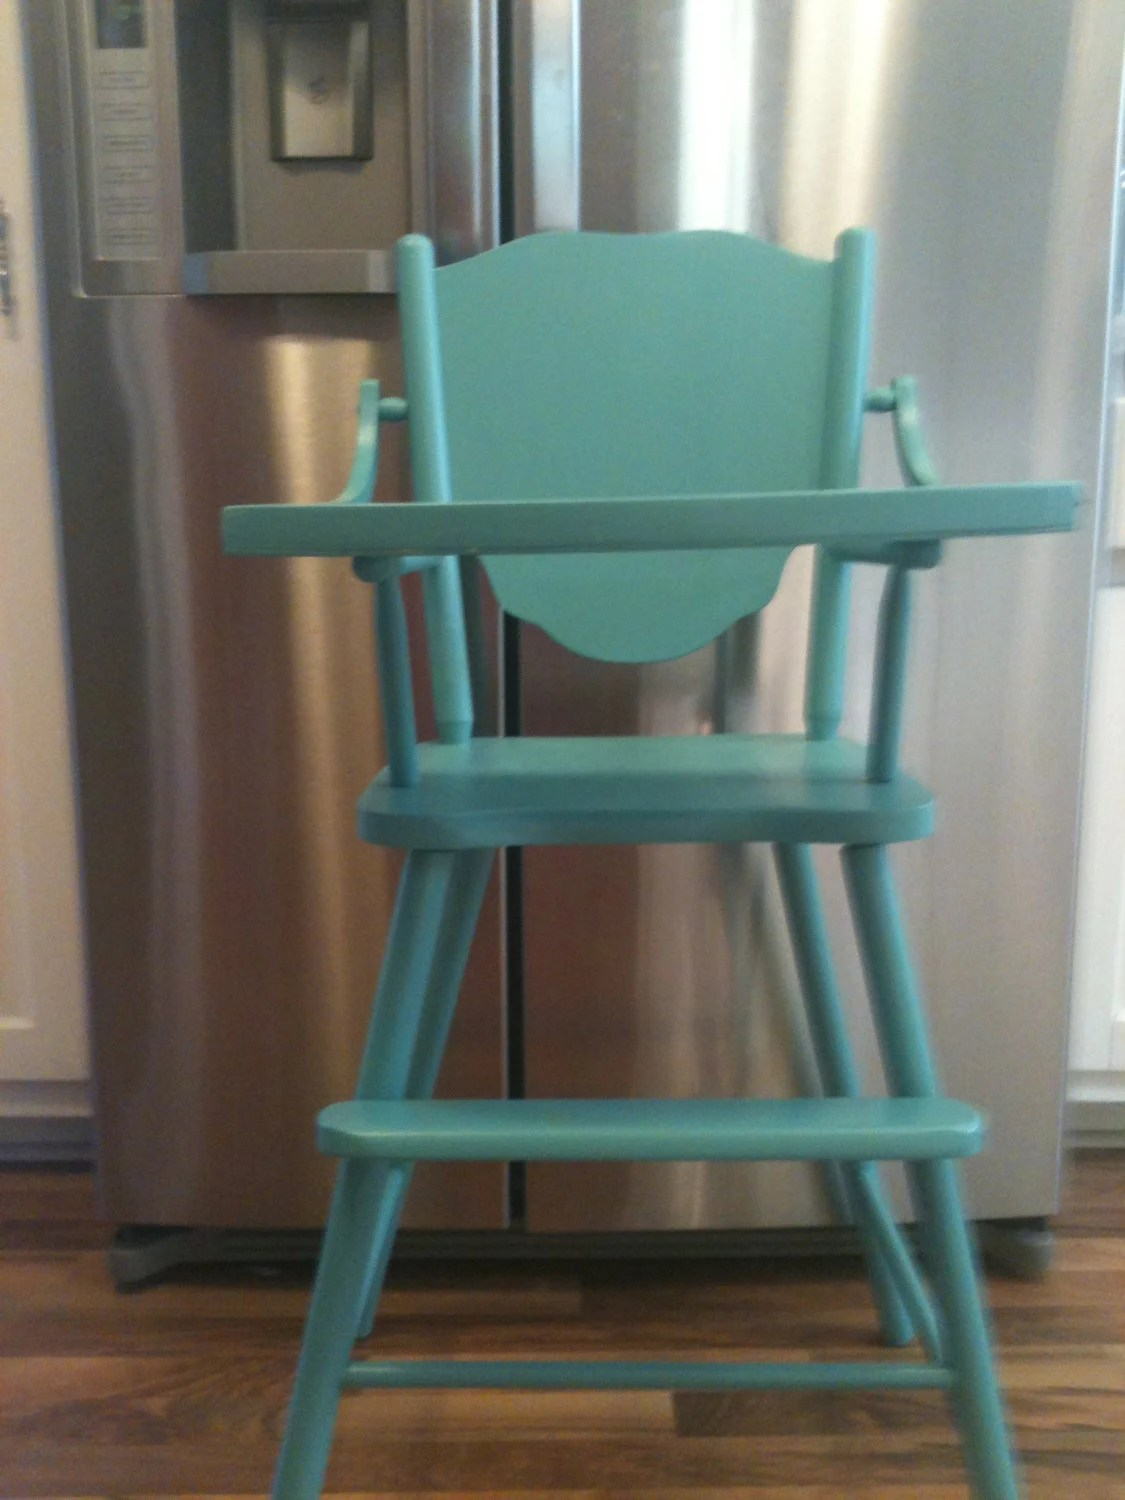 baby highchair 3 in 1 chairs for living rooms vintage aqua turquoise painted wood chair